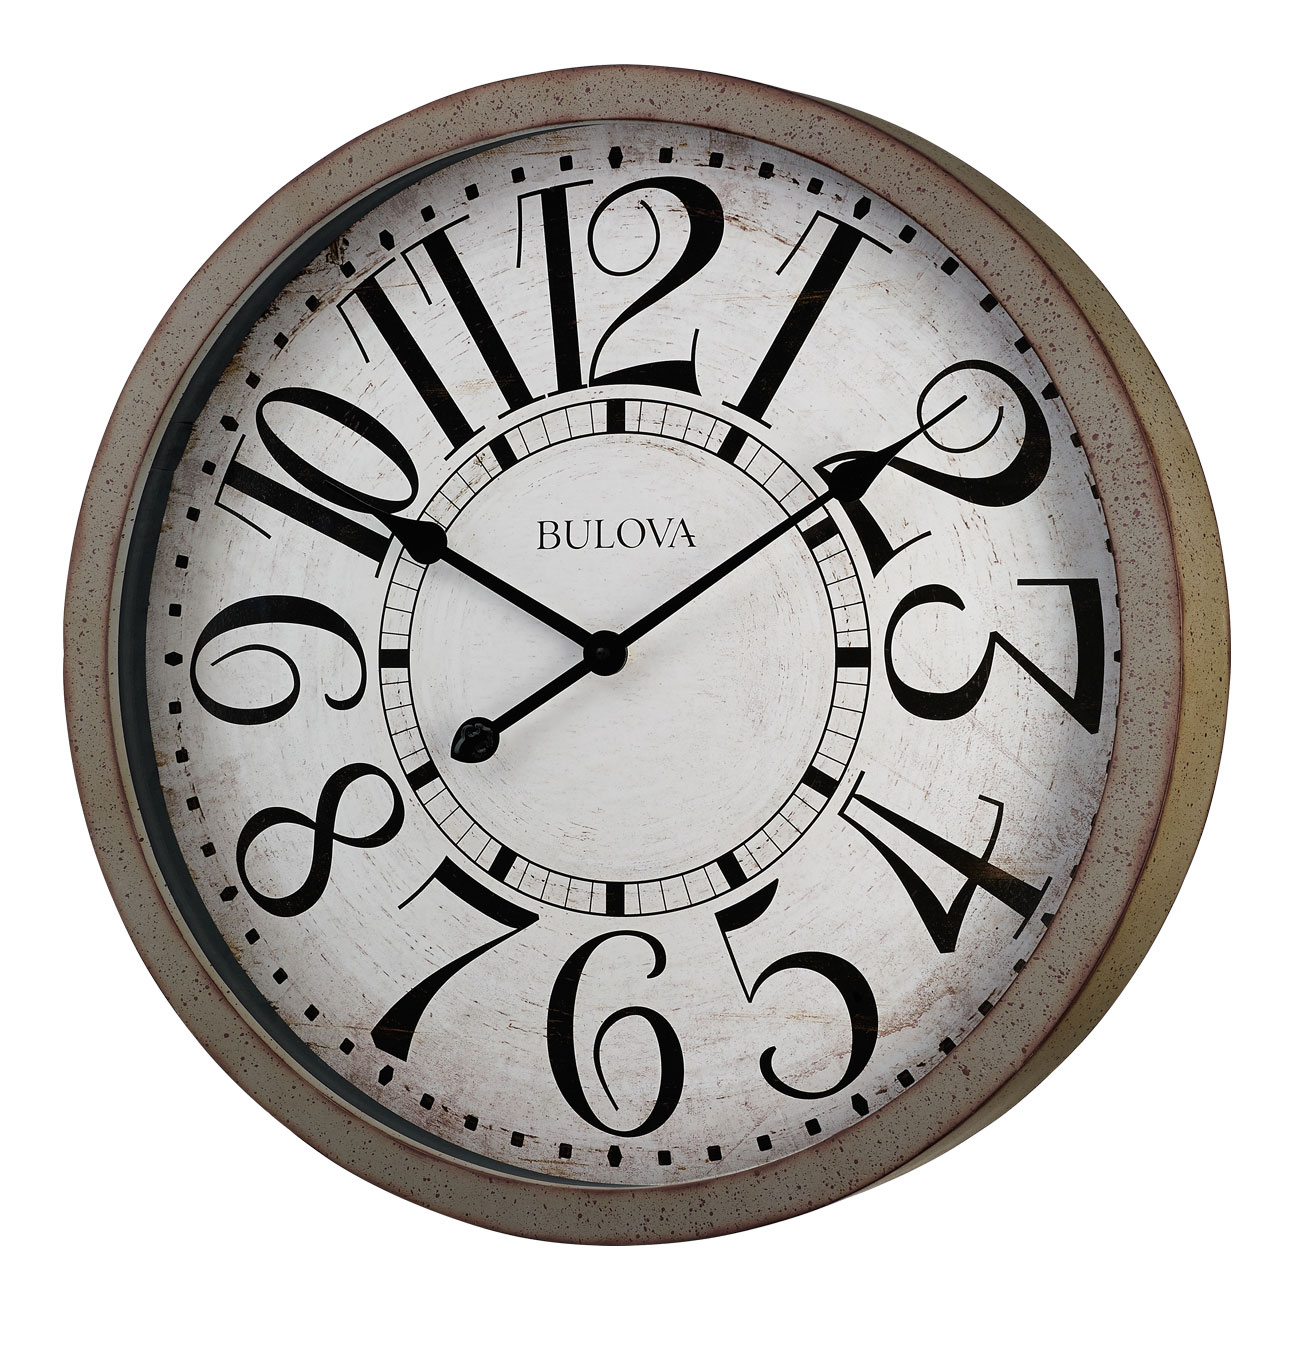 Decorative Wall Clock decorative wall clocks